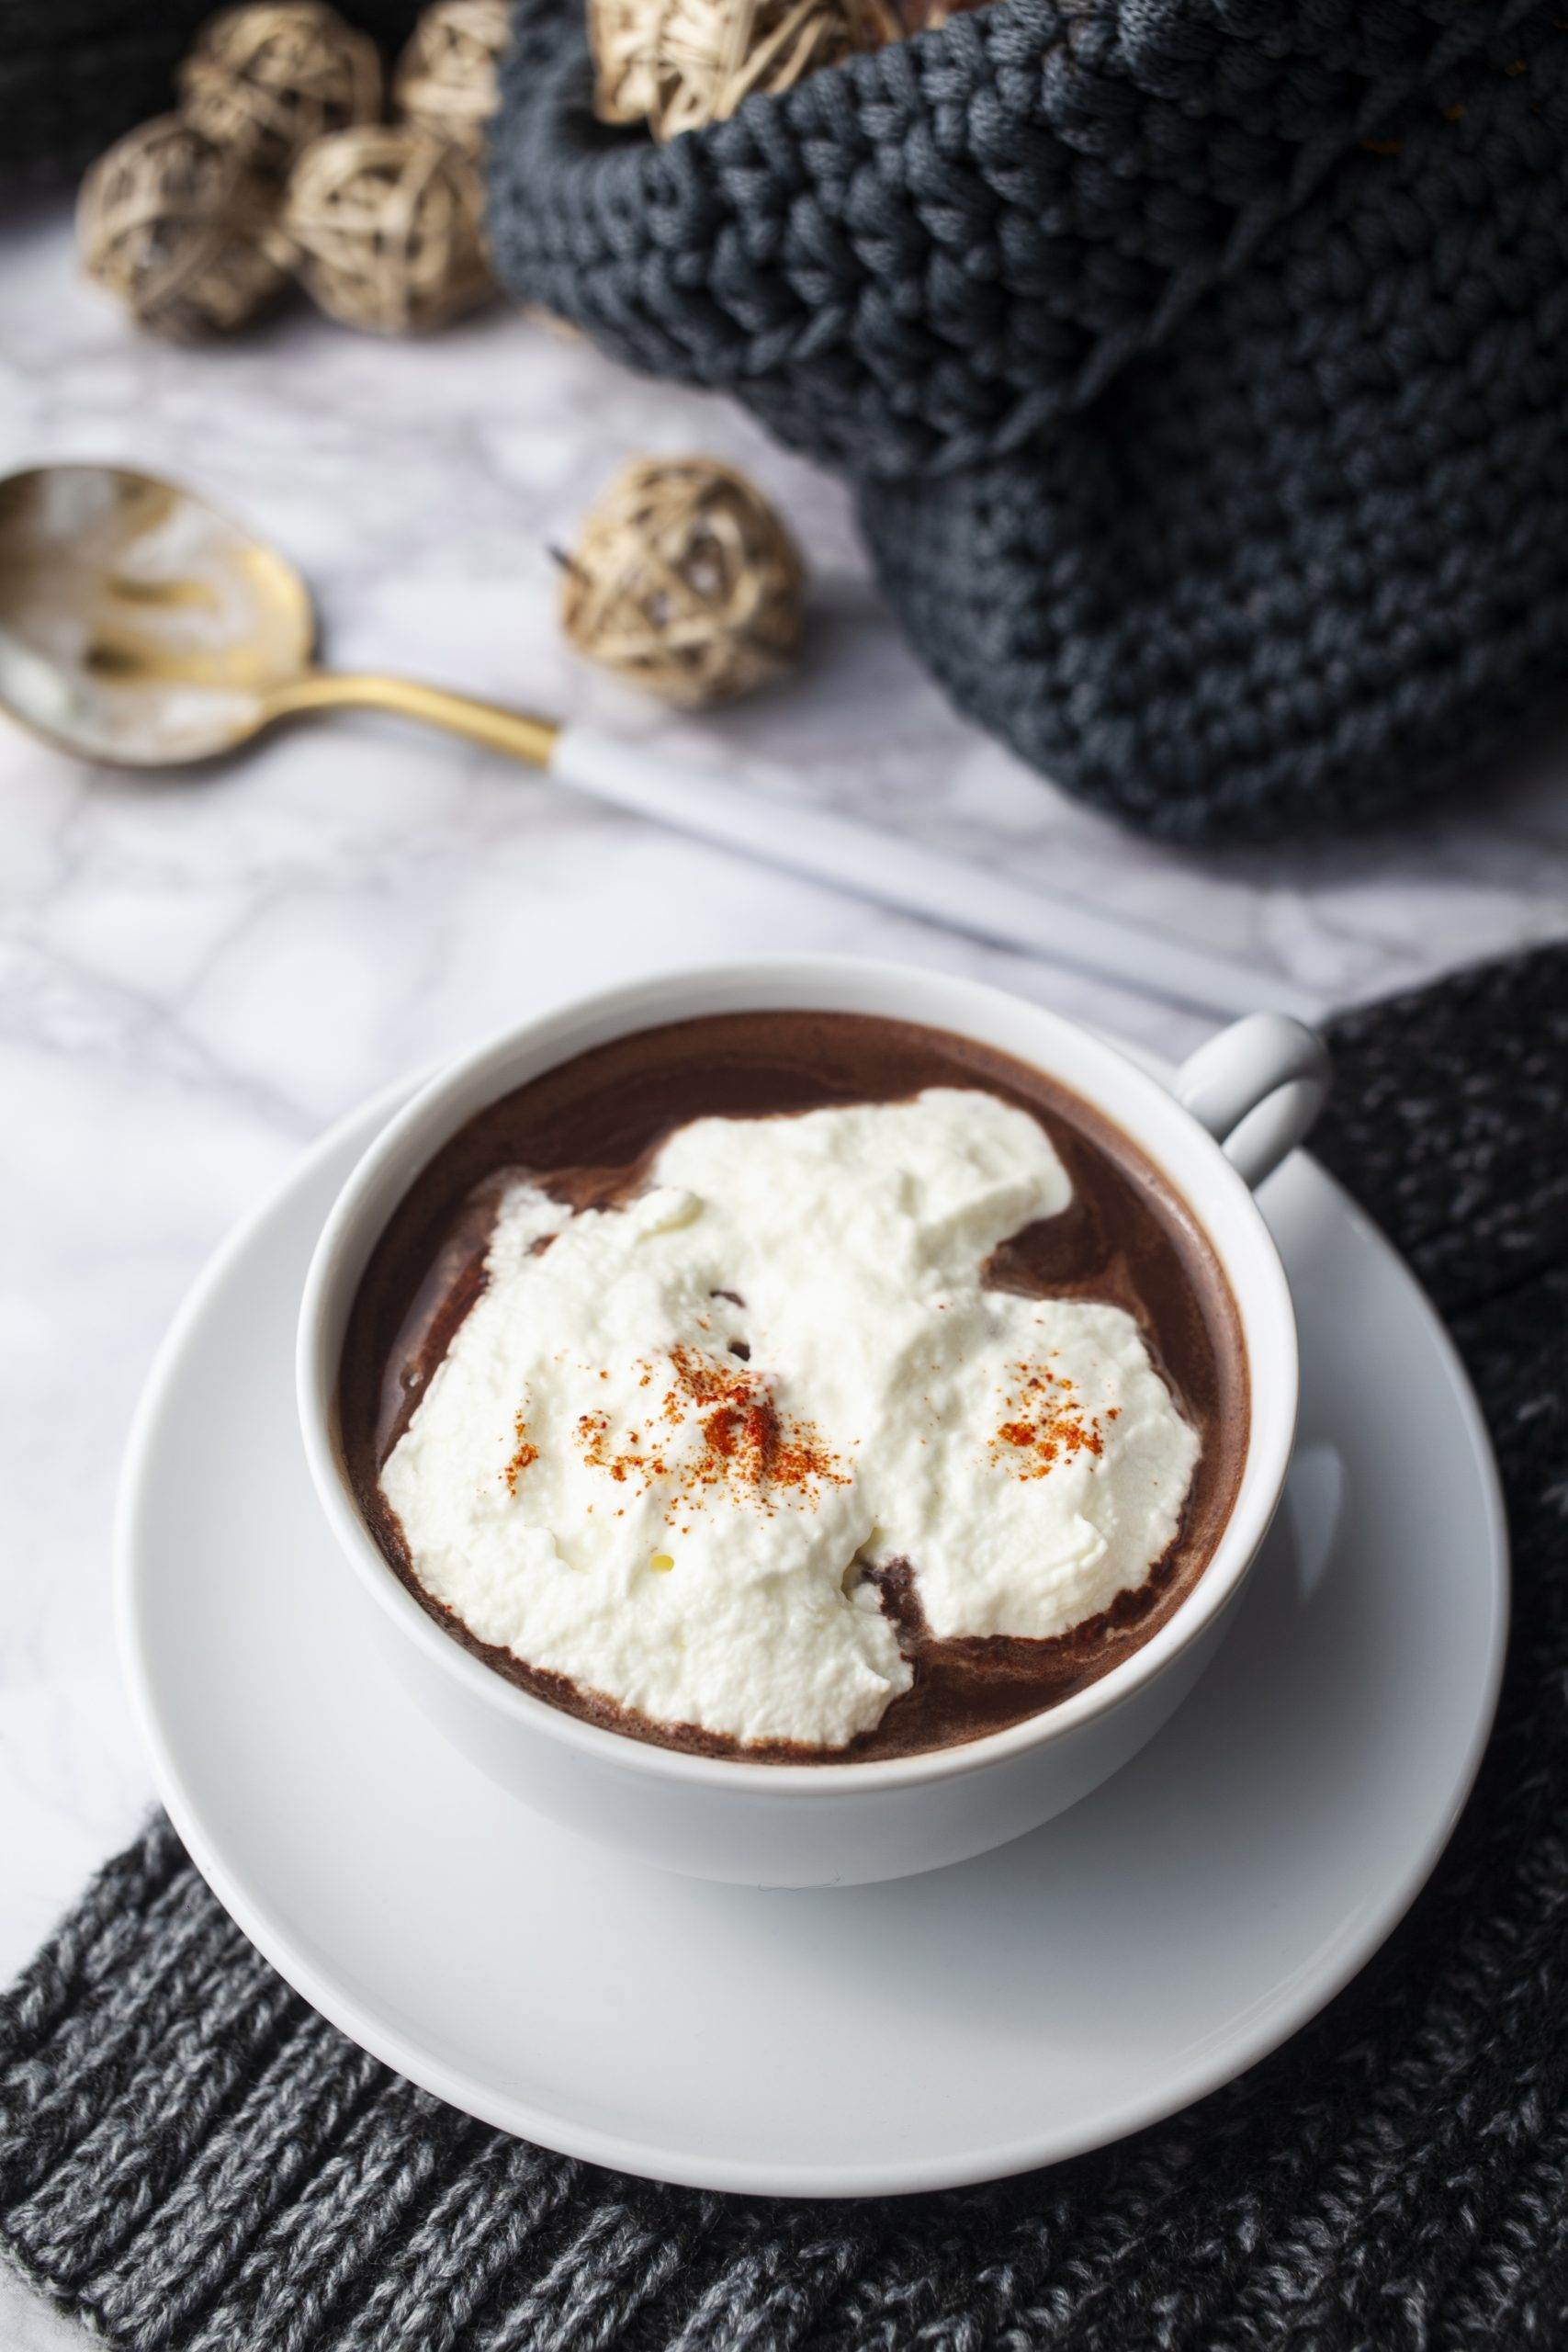 French style hot chocolate with whipped cream and hot pepper flakes